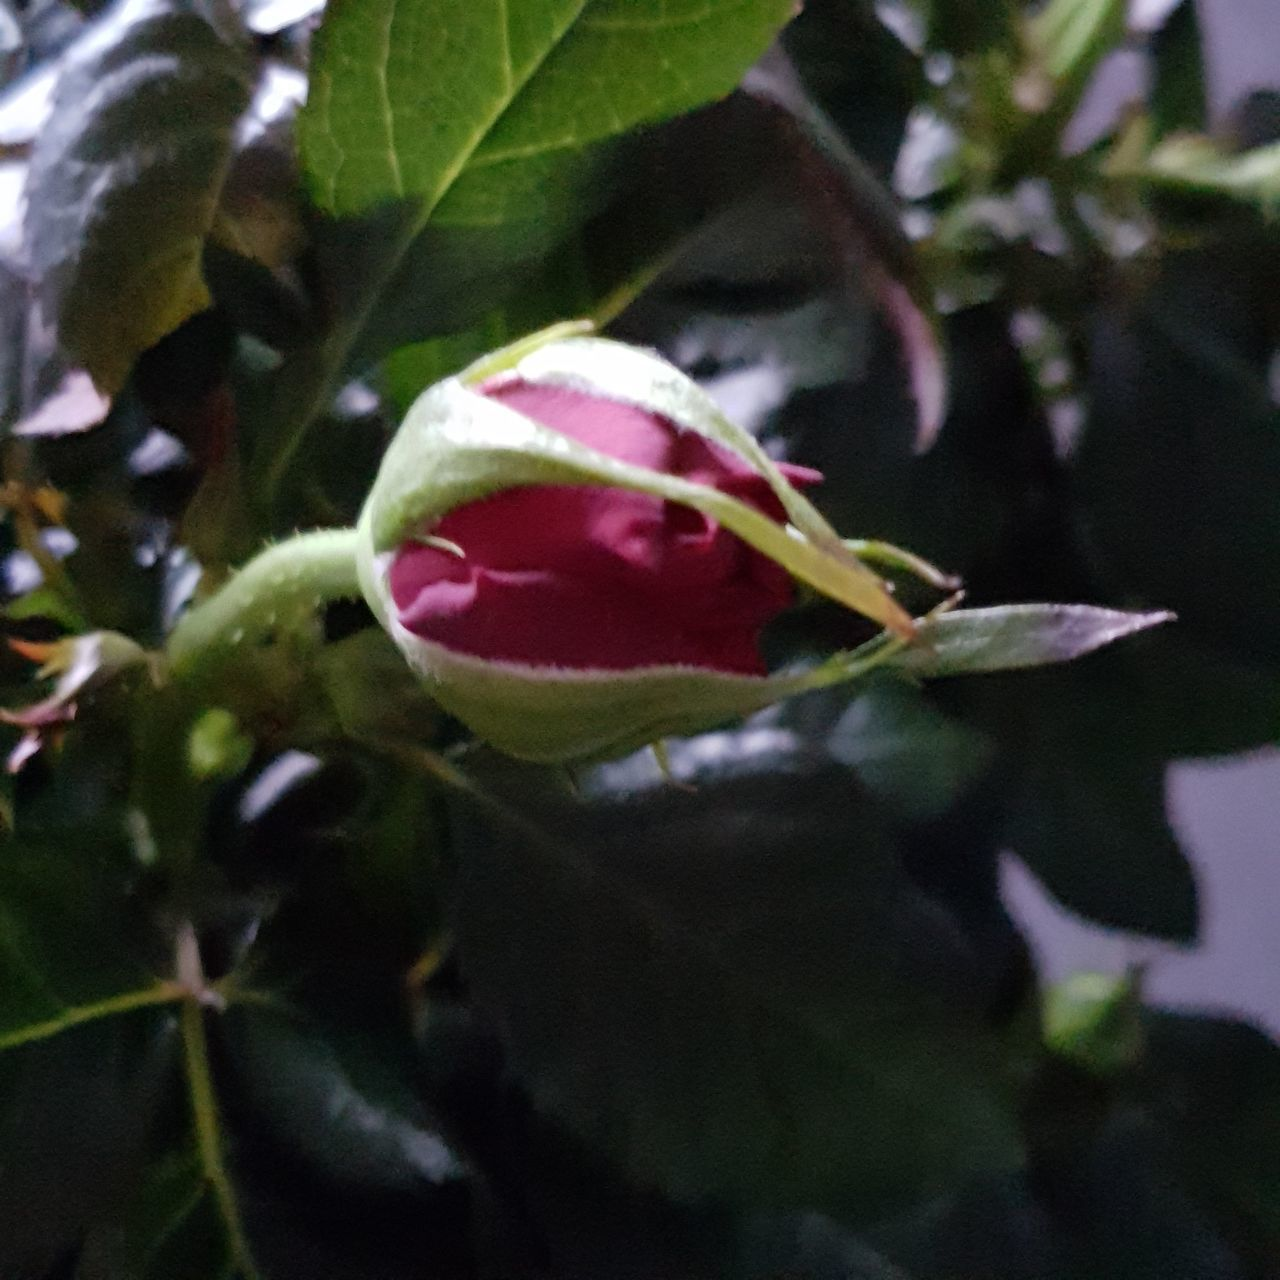 growth, flower, freshness, beauty in nature, nature, petal, fragility, plant, close-up, leaf, no people, rose - flower, outdoors, new life, day, flower head, blooming